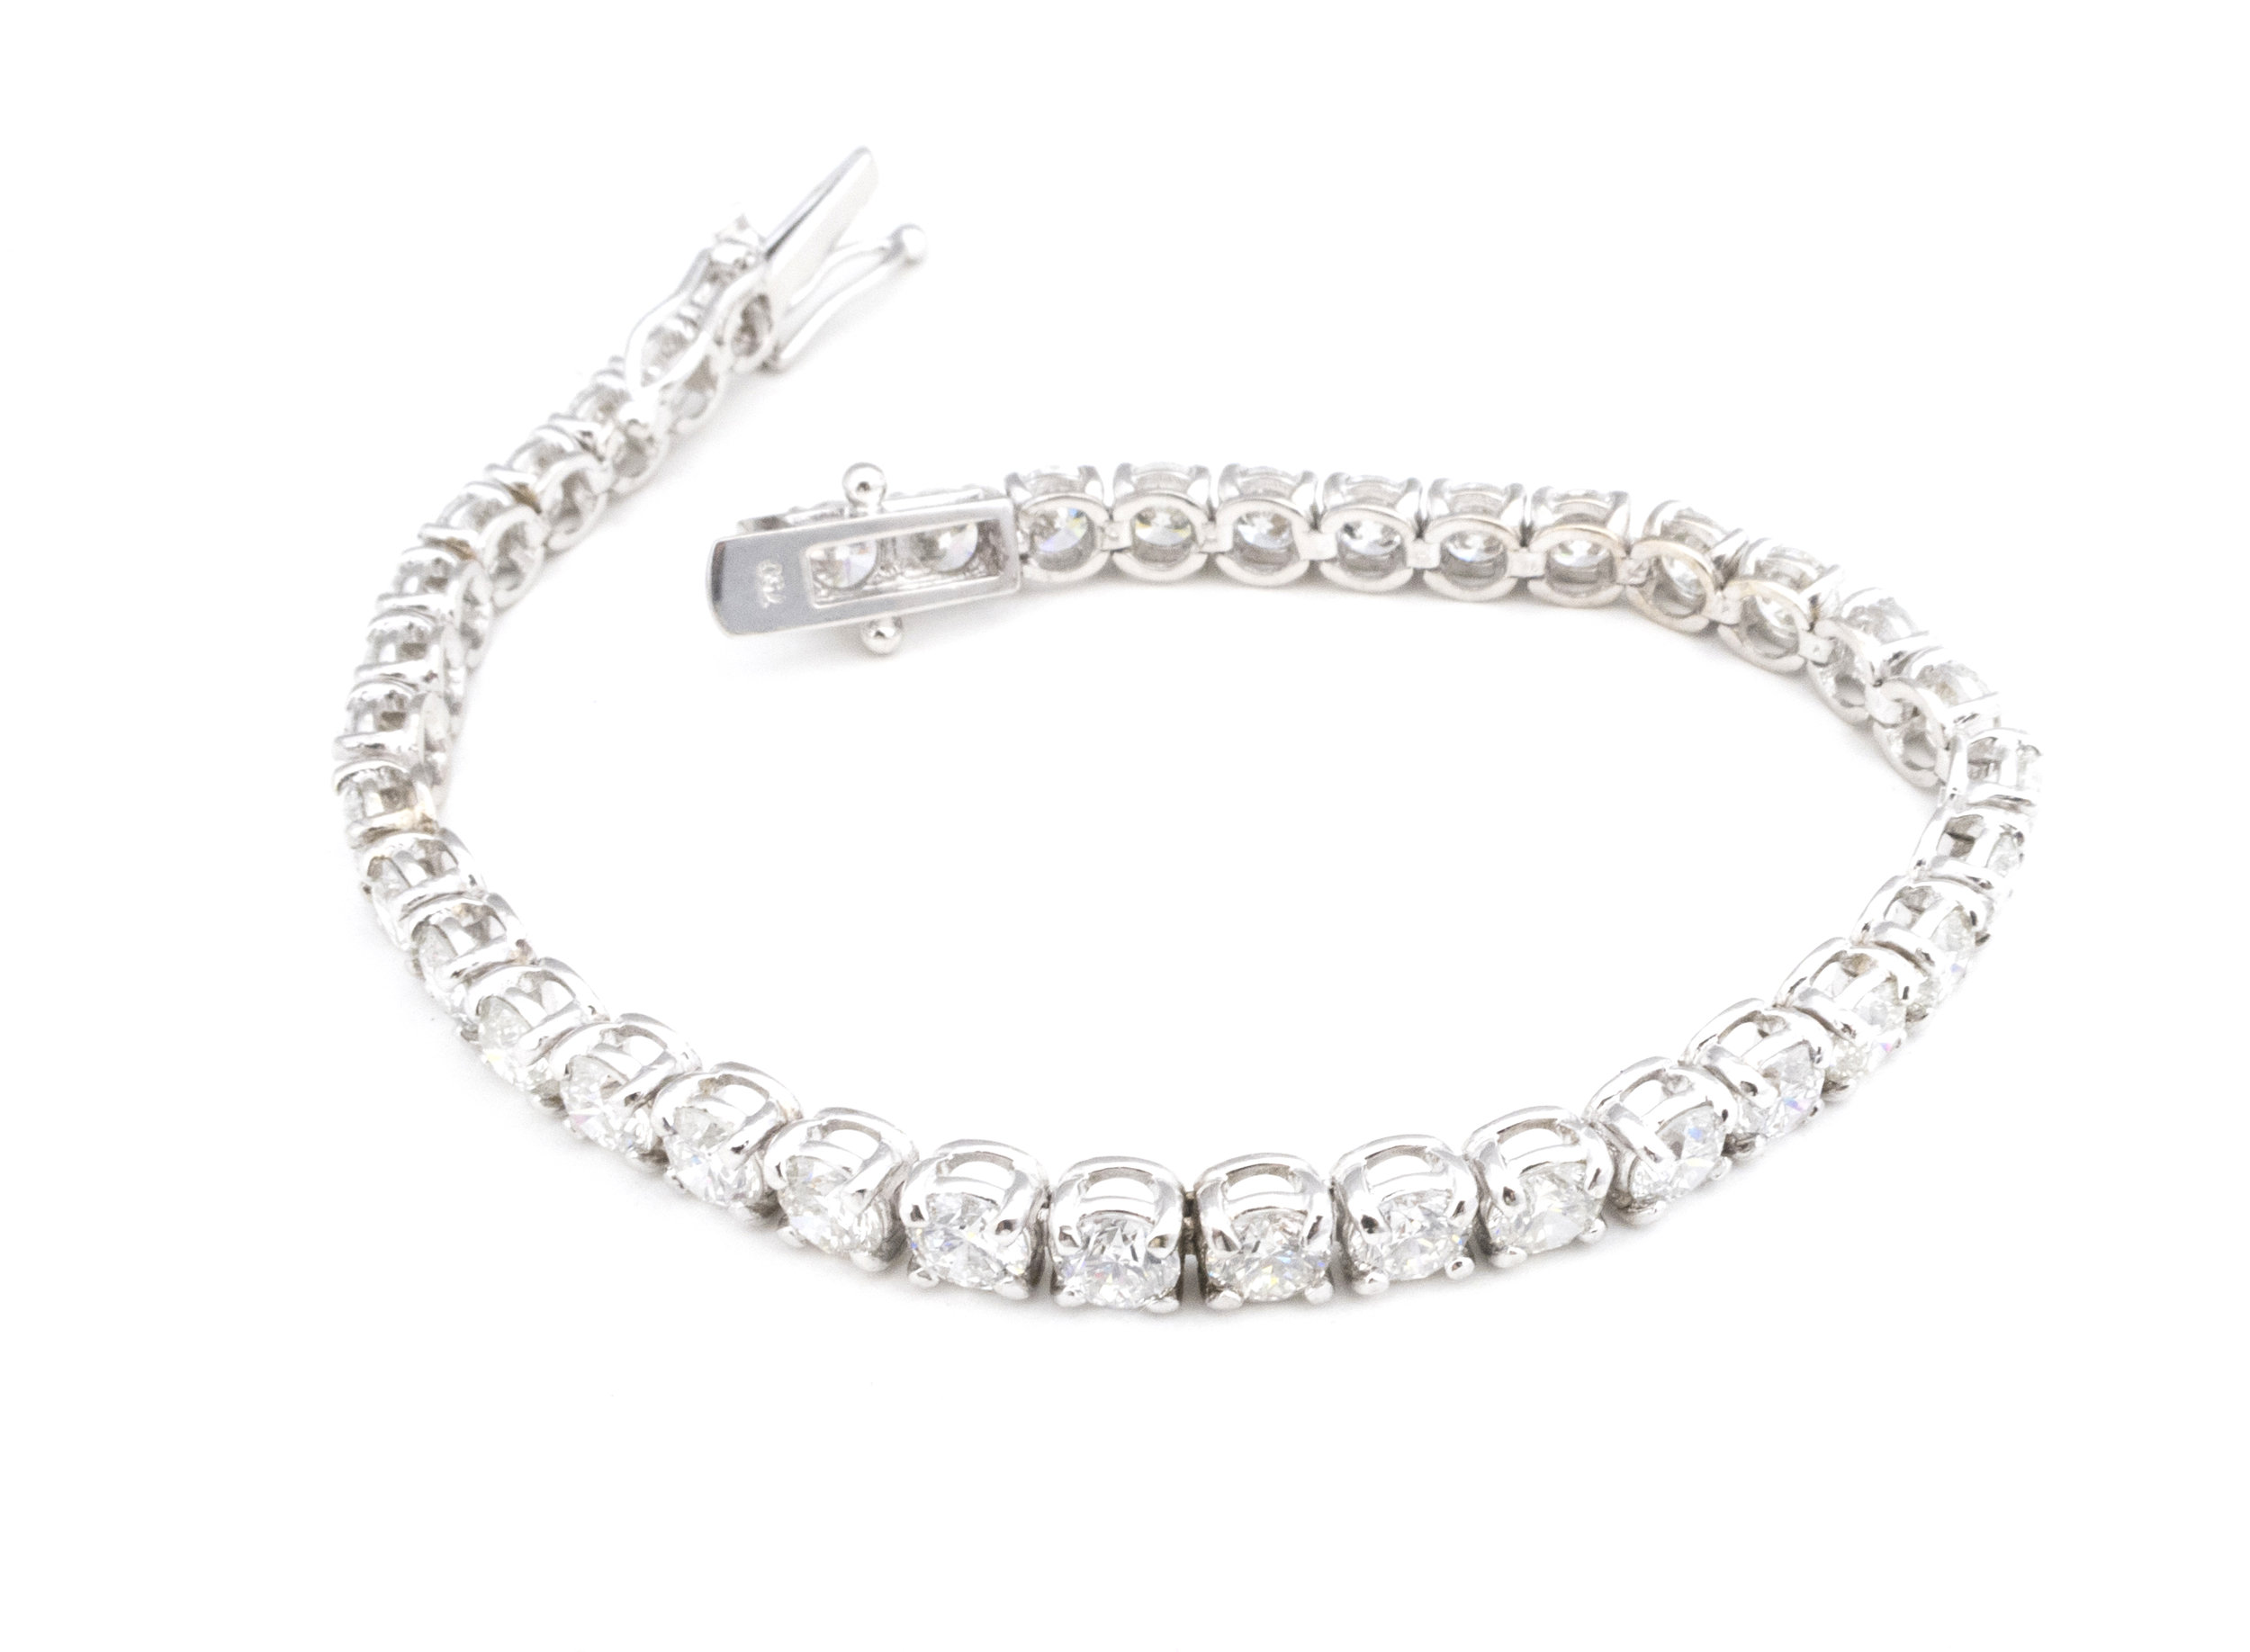 Diamond tennis bracelet! - SOLD!